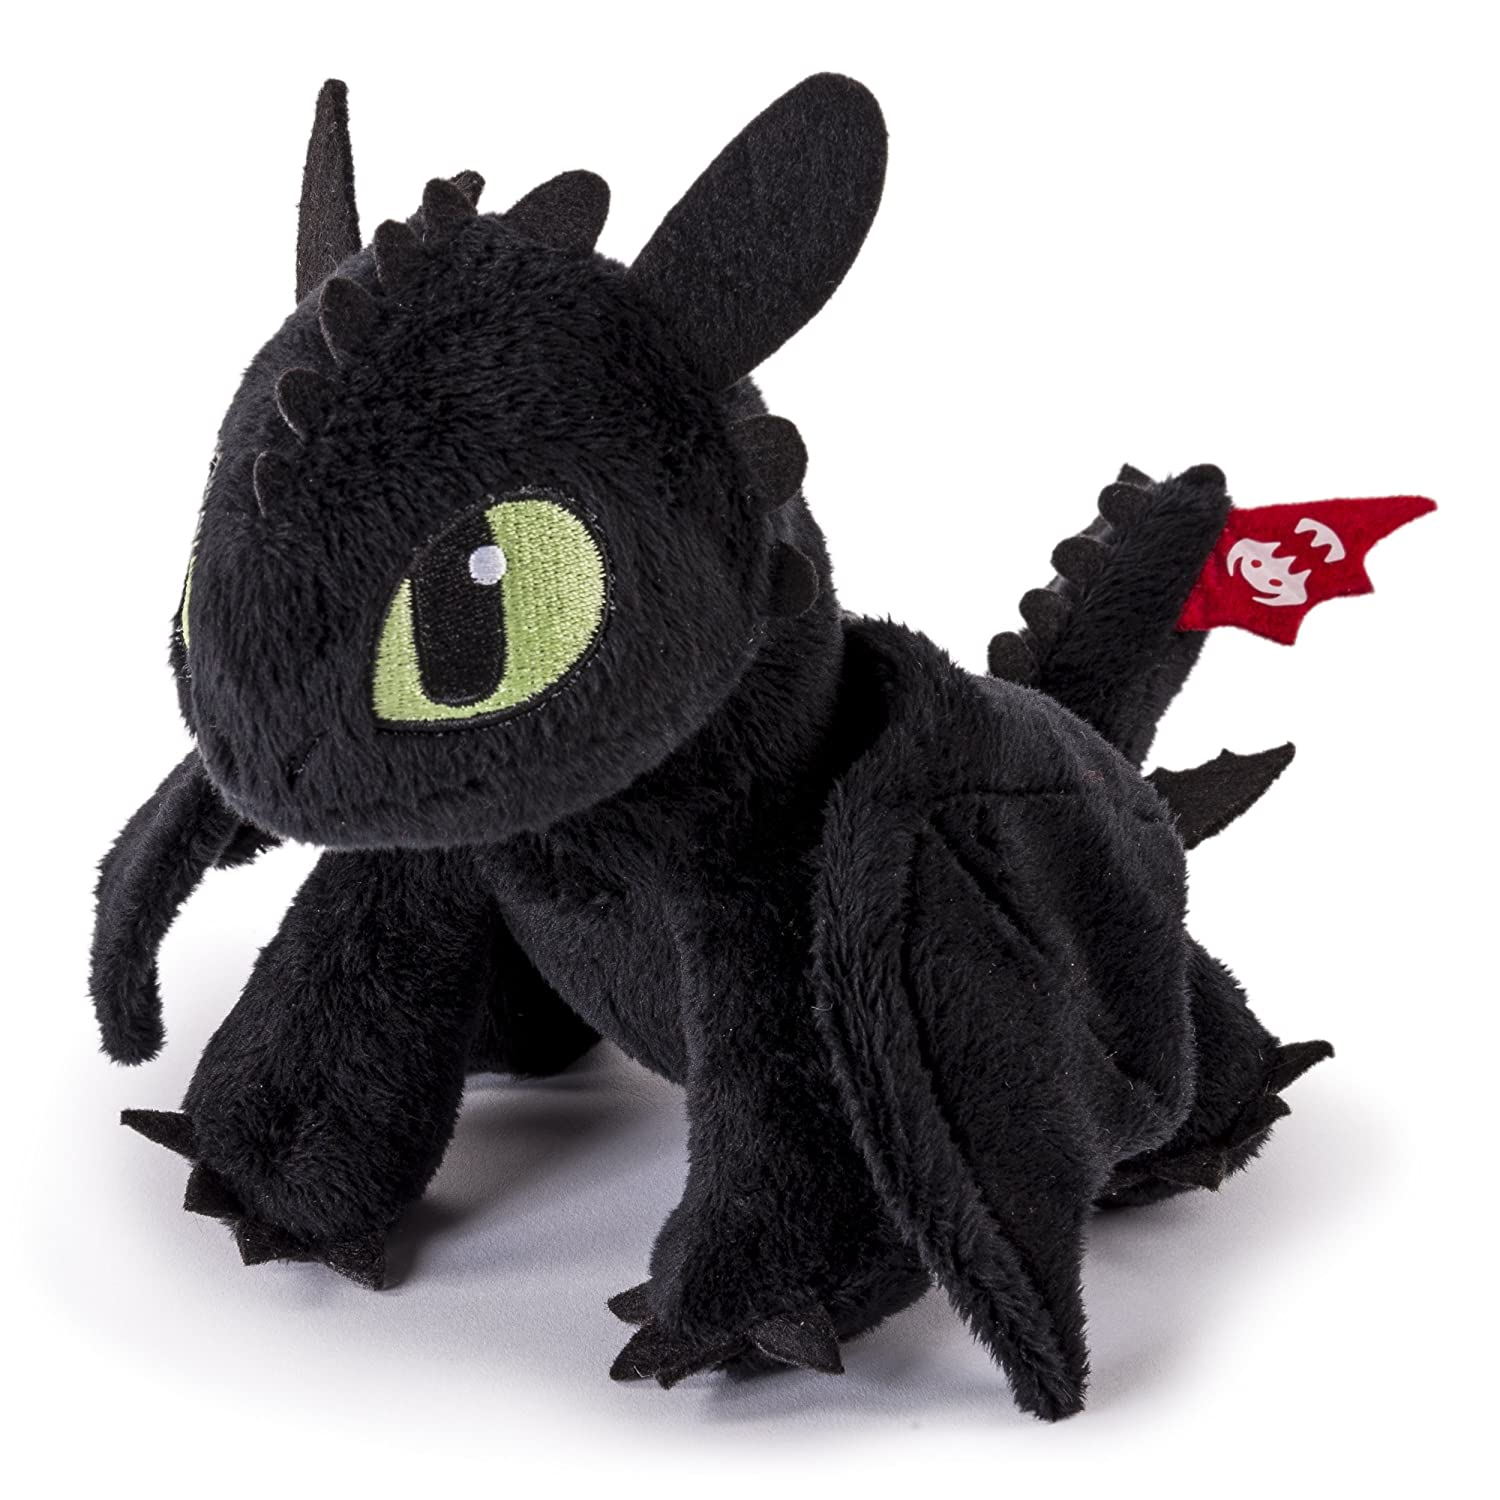 Dreamworks Dragons 20072253 How to Train Your Dragon, 8 Inch Premium Plush, Red Tail Toothless